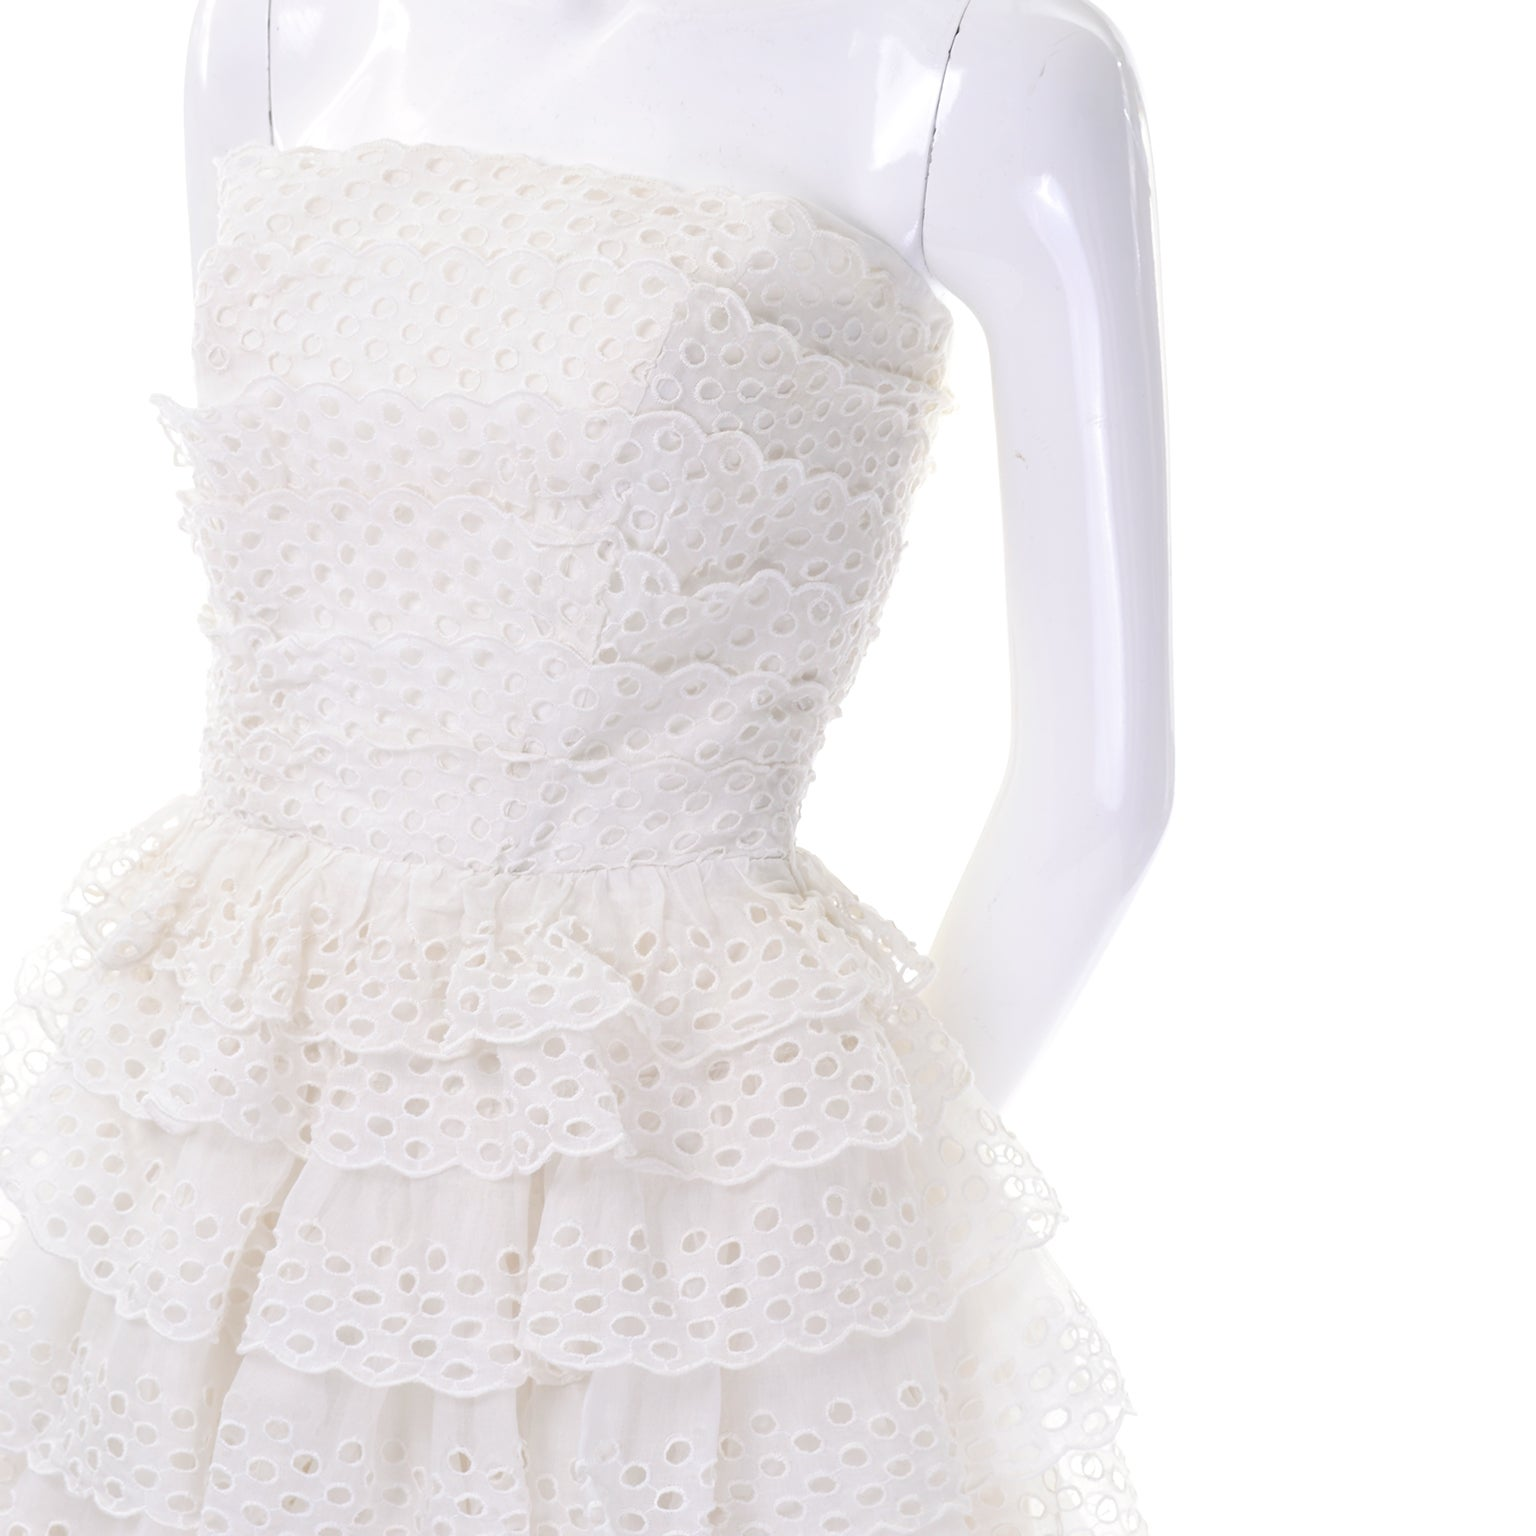 248cef6f4b4 Suzy Perette White Eyelet Ruffled Strapless Vintage Dress 2 4 For Sale at  1stdibs